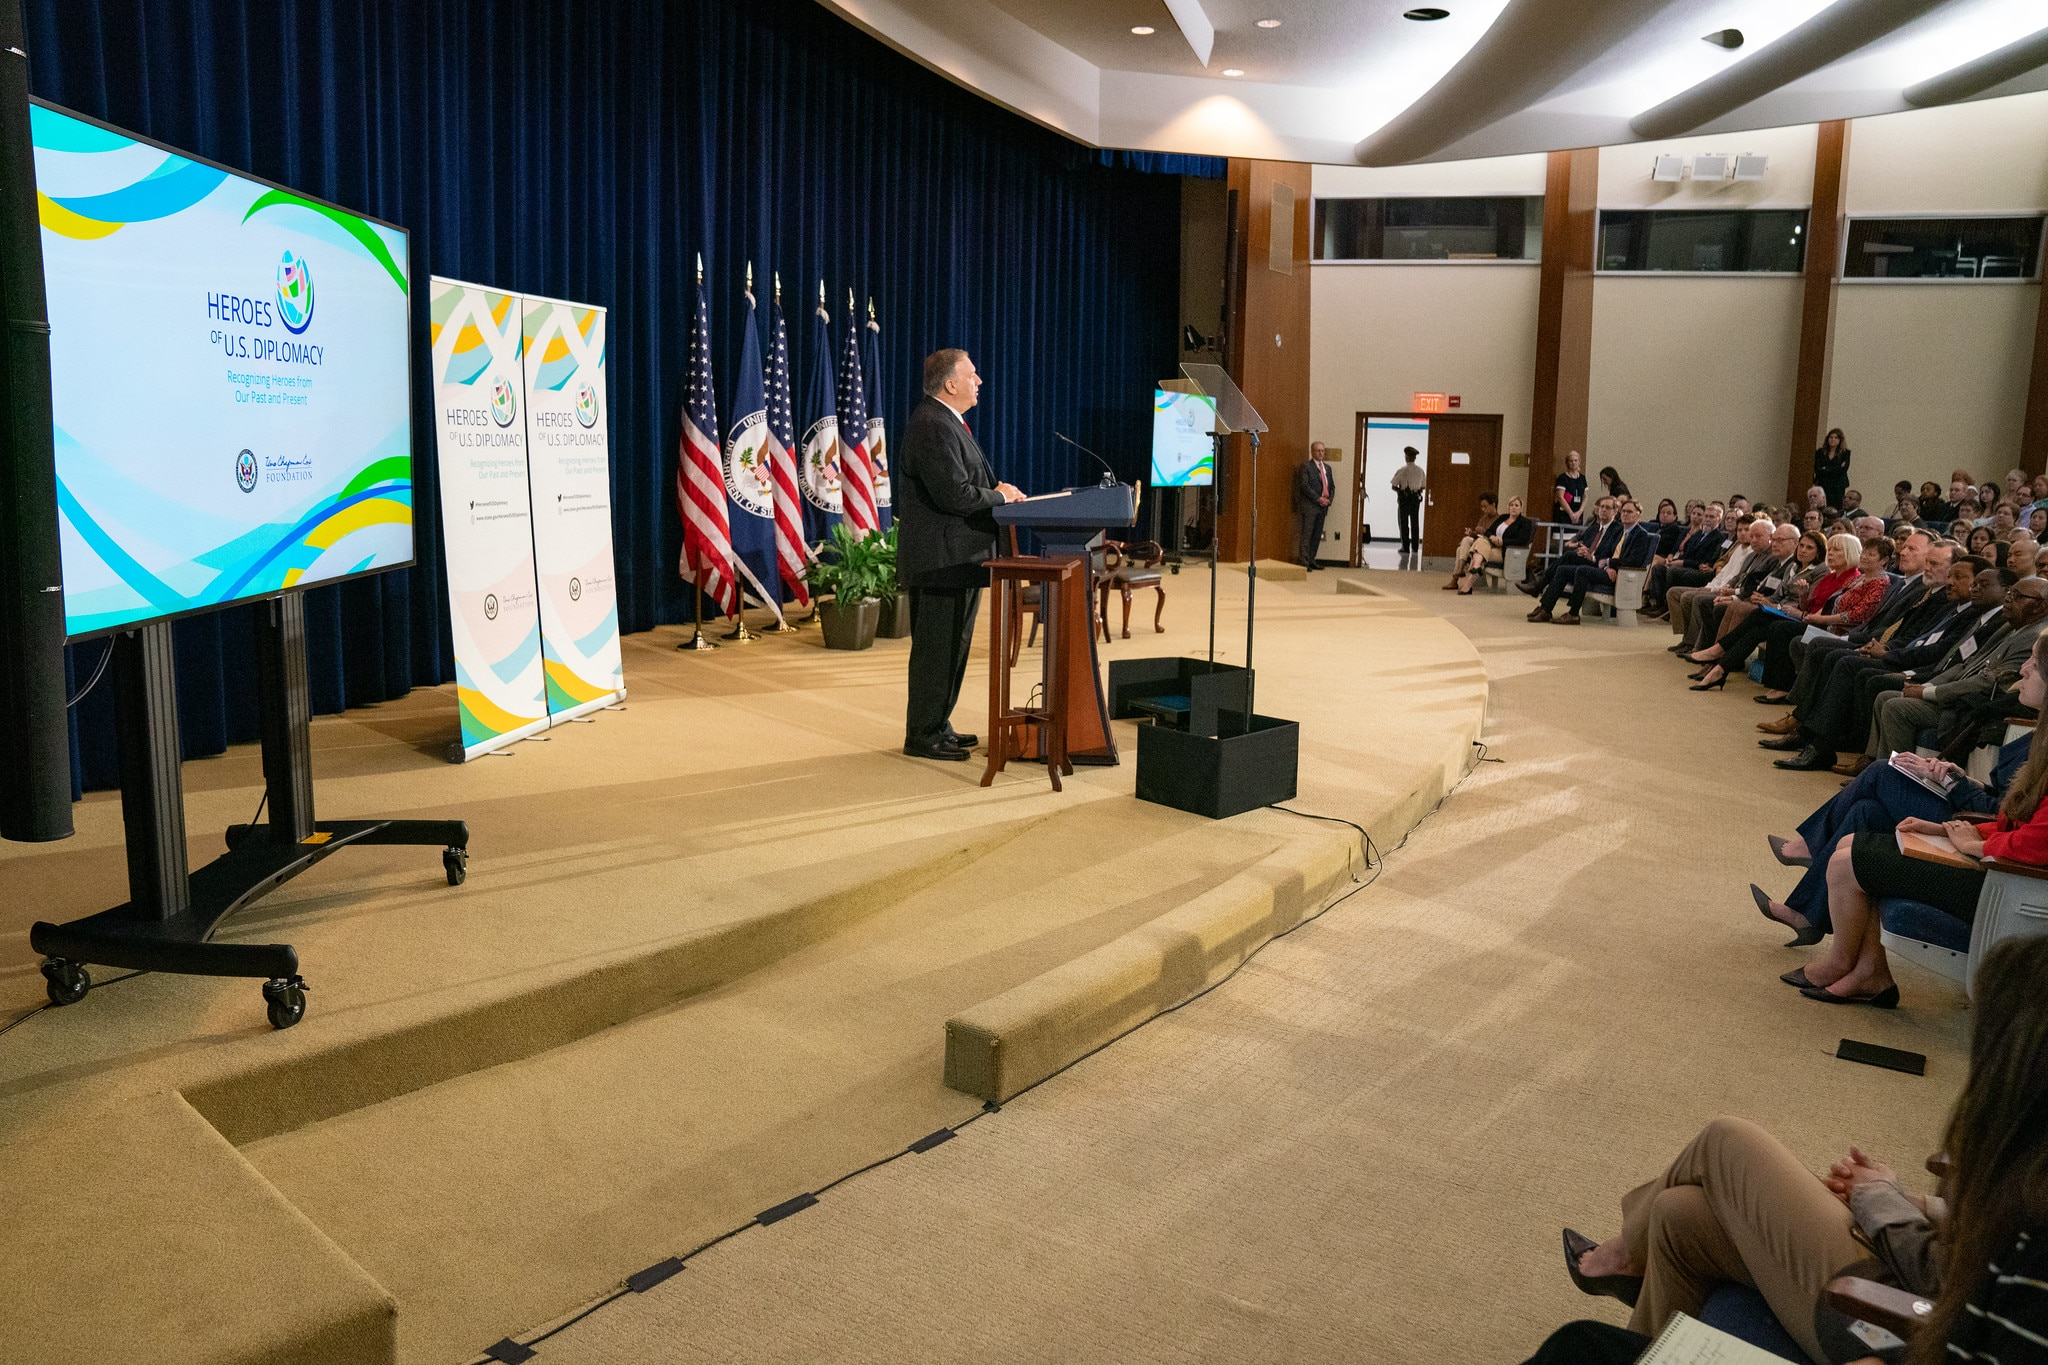 U.S. Secretary of State Michael R. Pompeo introduces the inaugural selectee of the Heroes of U.S. Diplomacy initiative at the launch event at the U.S. Department of State on September 13, 2019.